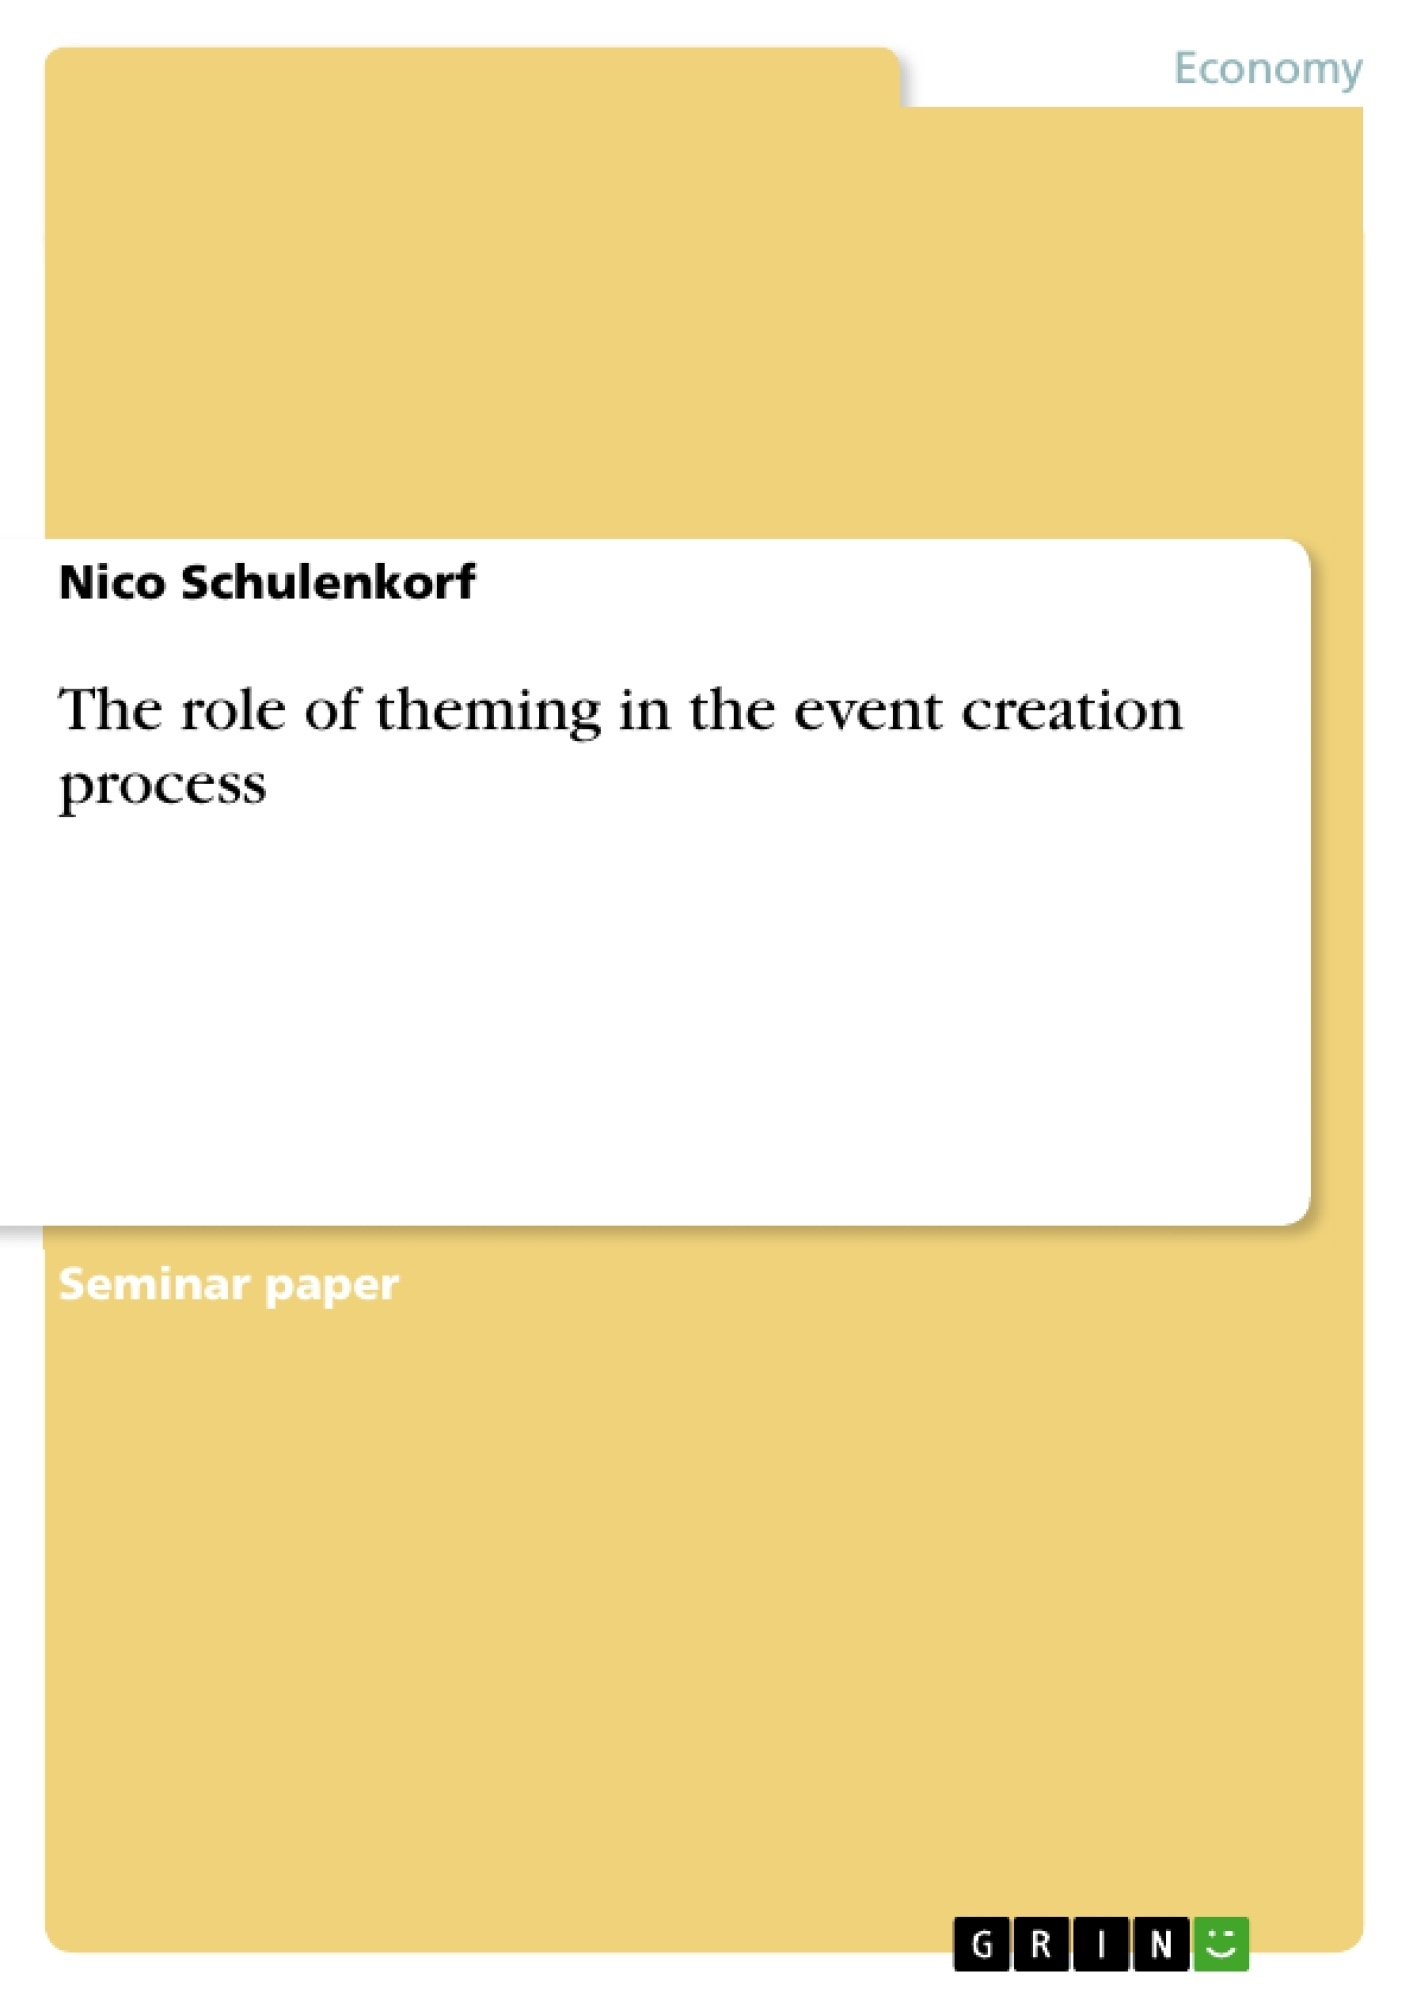 Title: The role of theming in the event creation process